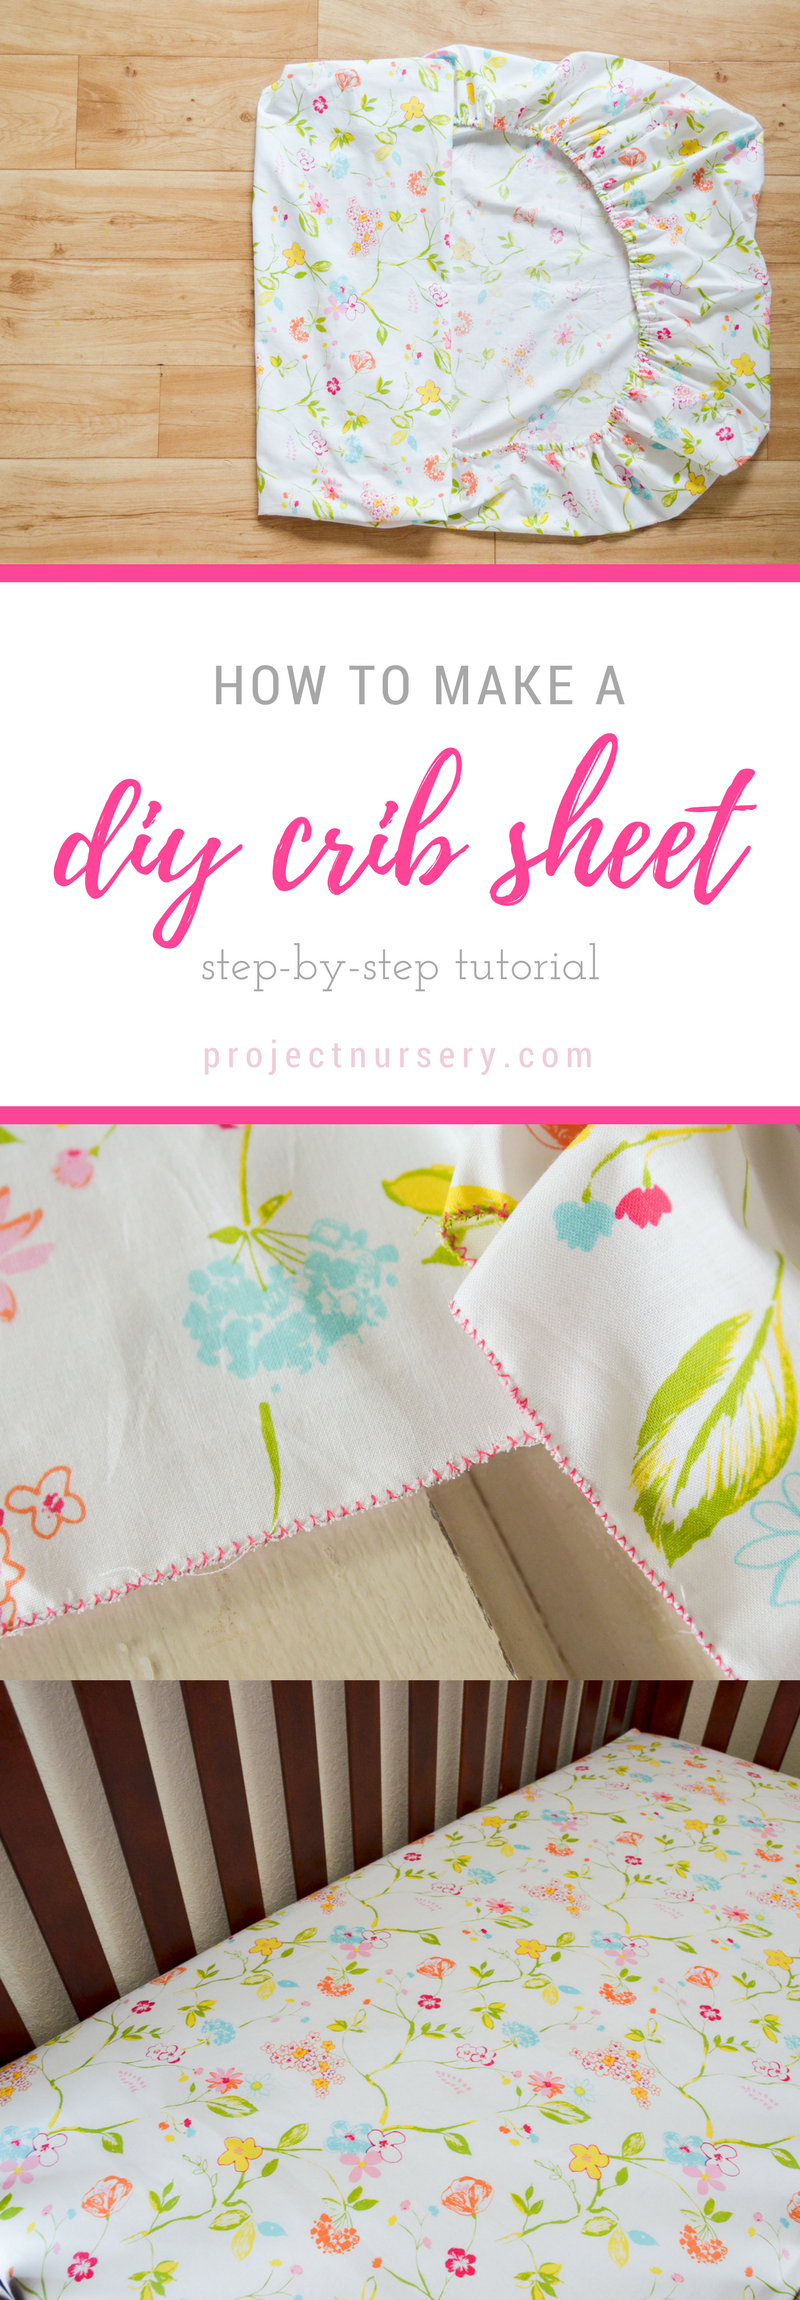 How to Make a DIY Crib Sheet